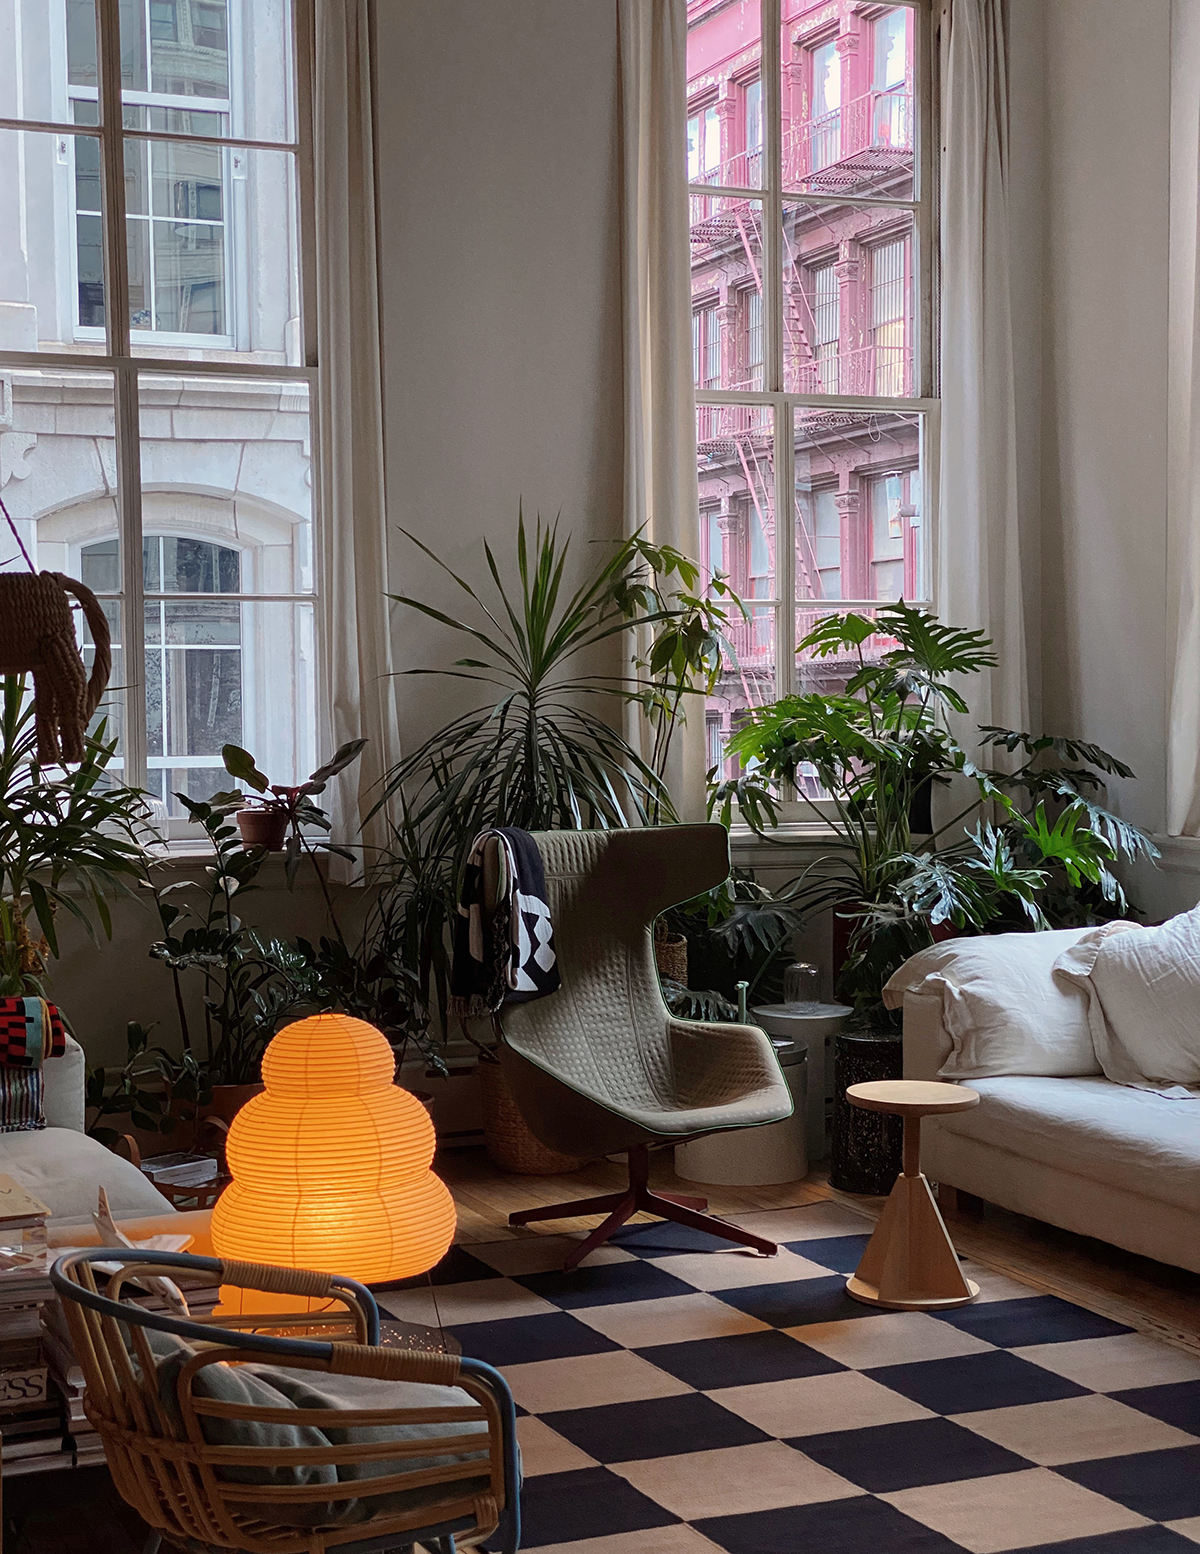 The Square rug in the color Tobacco in an inspiring New York loft, decorated with green plants and design furniture.